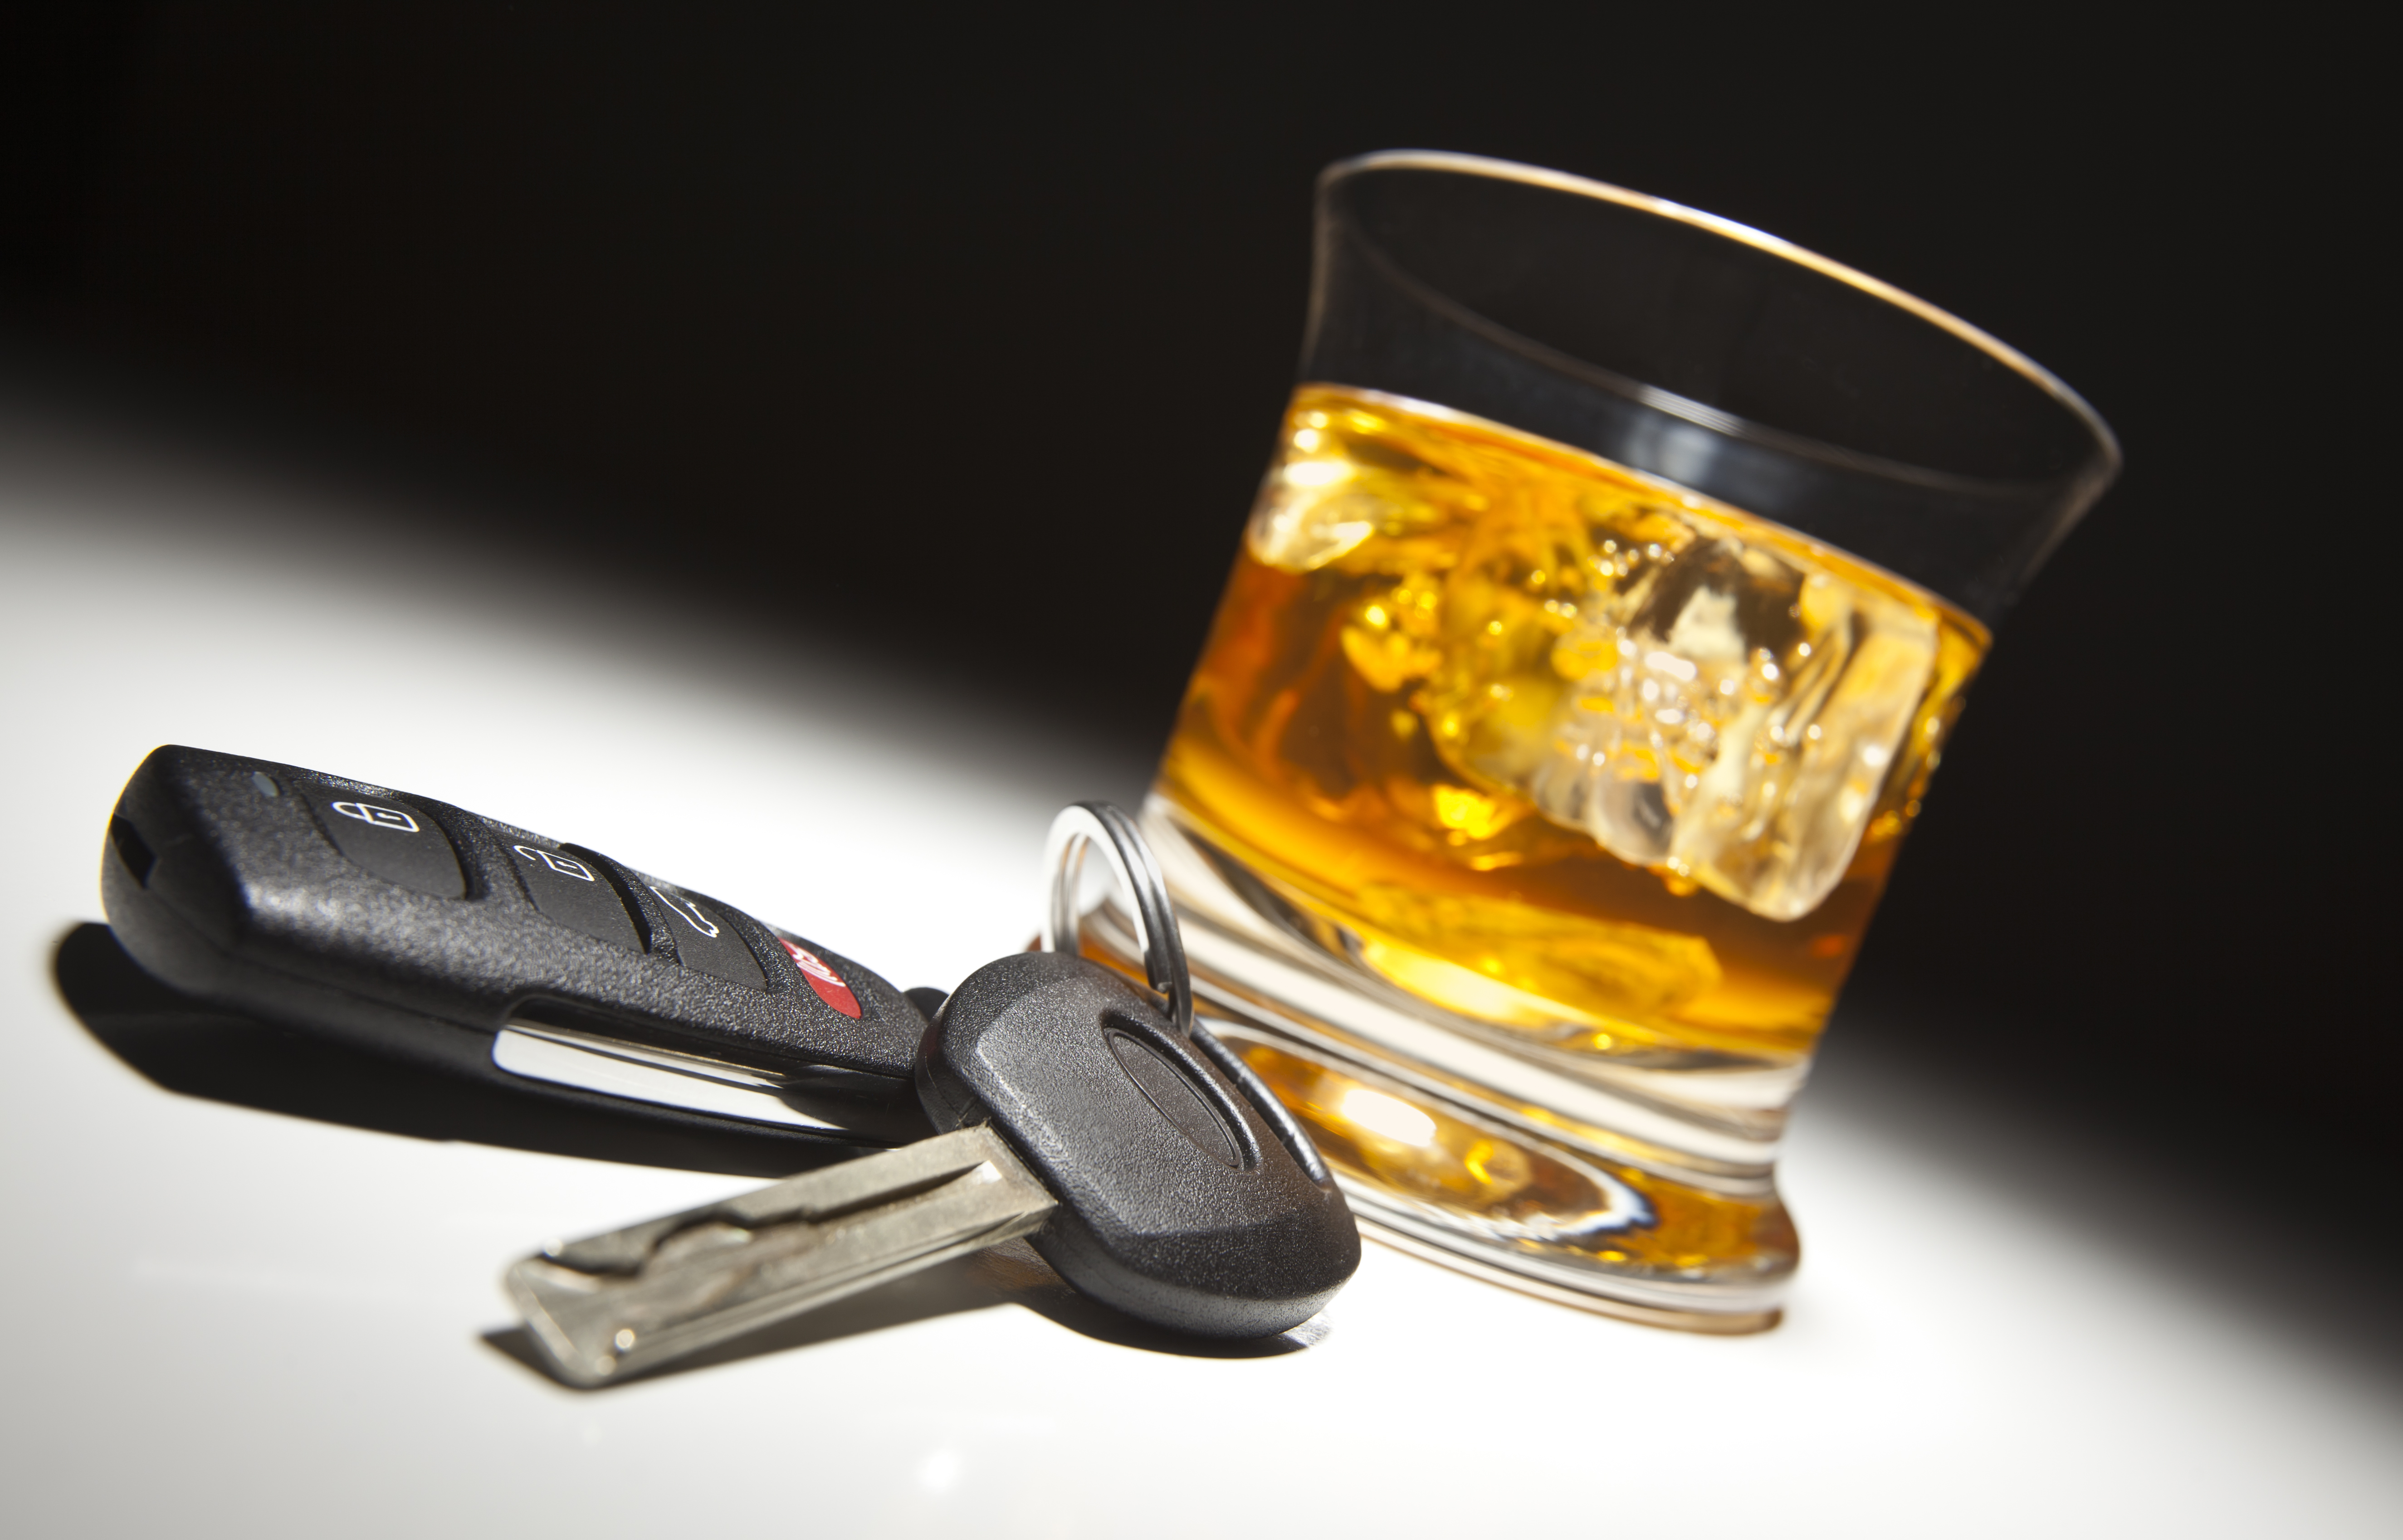 Pictured is the concept of driving under the influence. SHUTTERSTOCK/ Andy Dean Photography